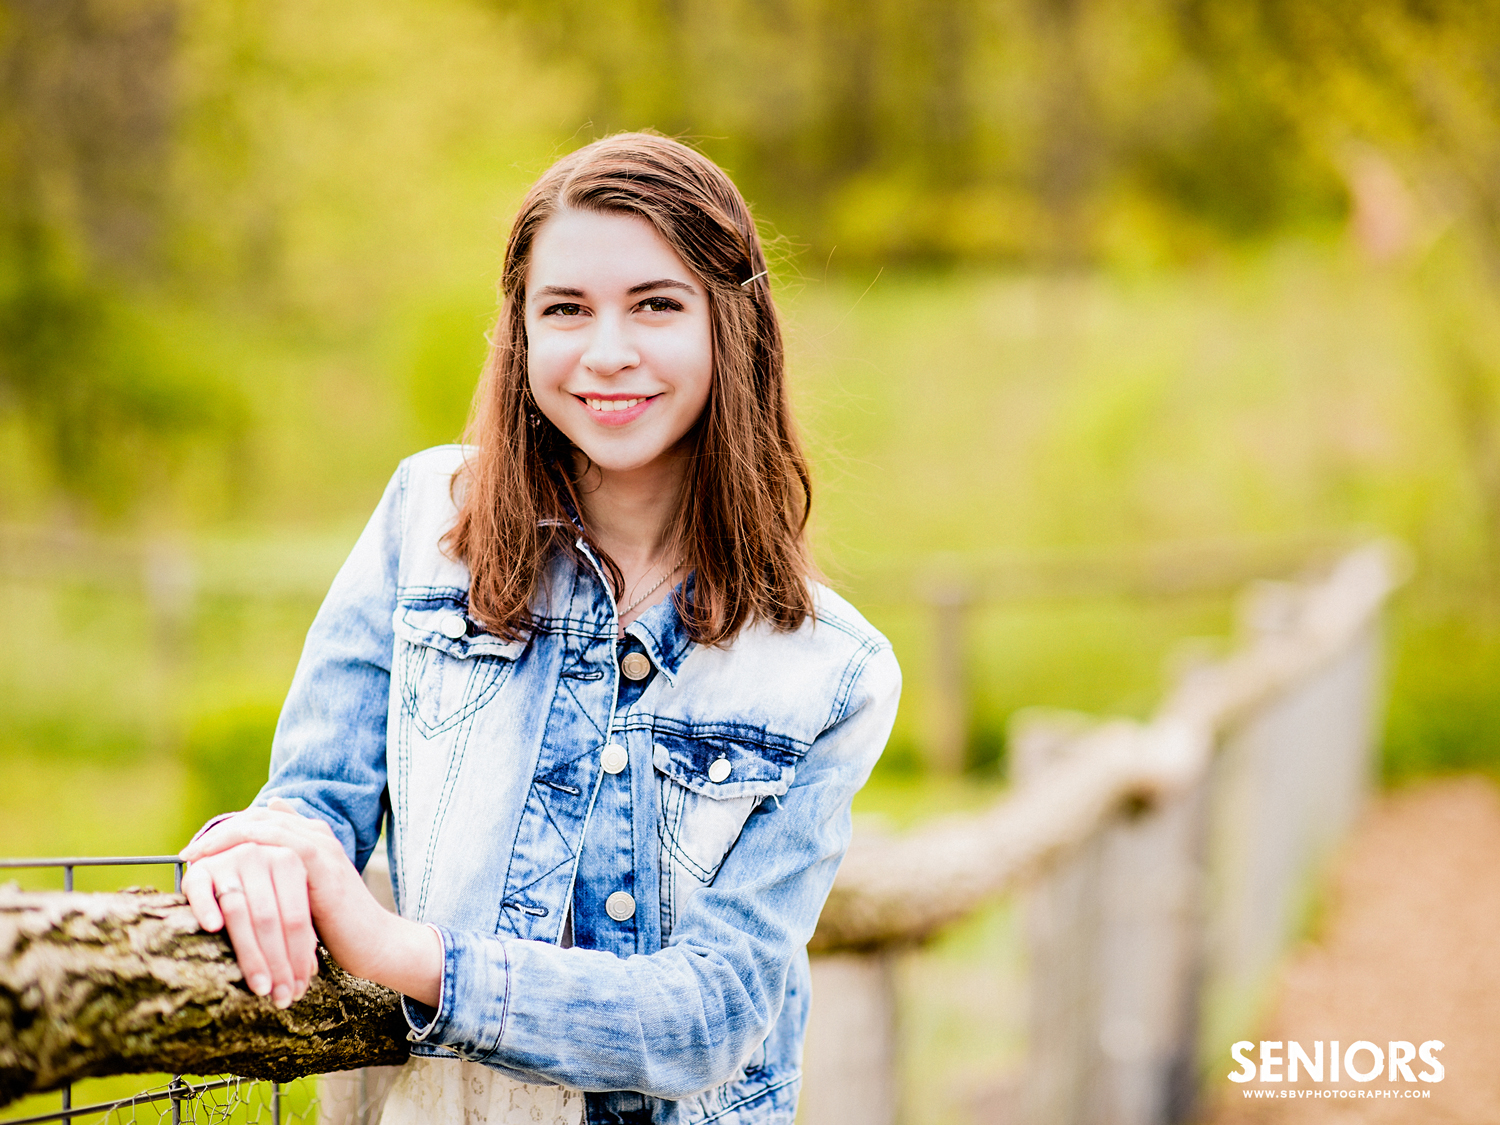 Senior photo at an old rustic fence at Taltree Arboretum.